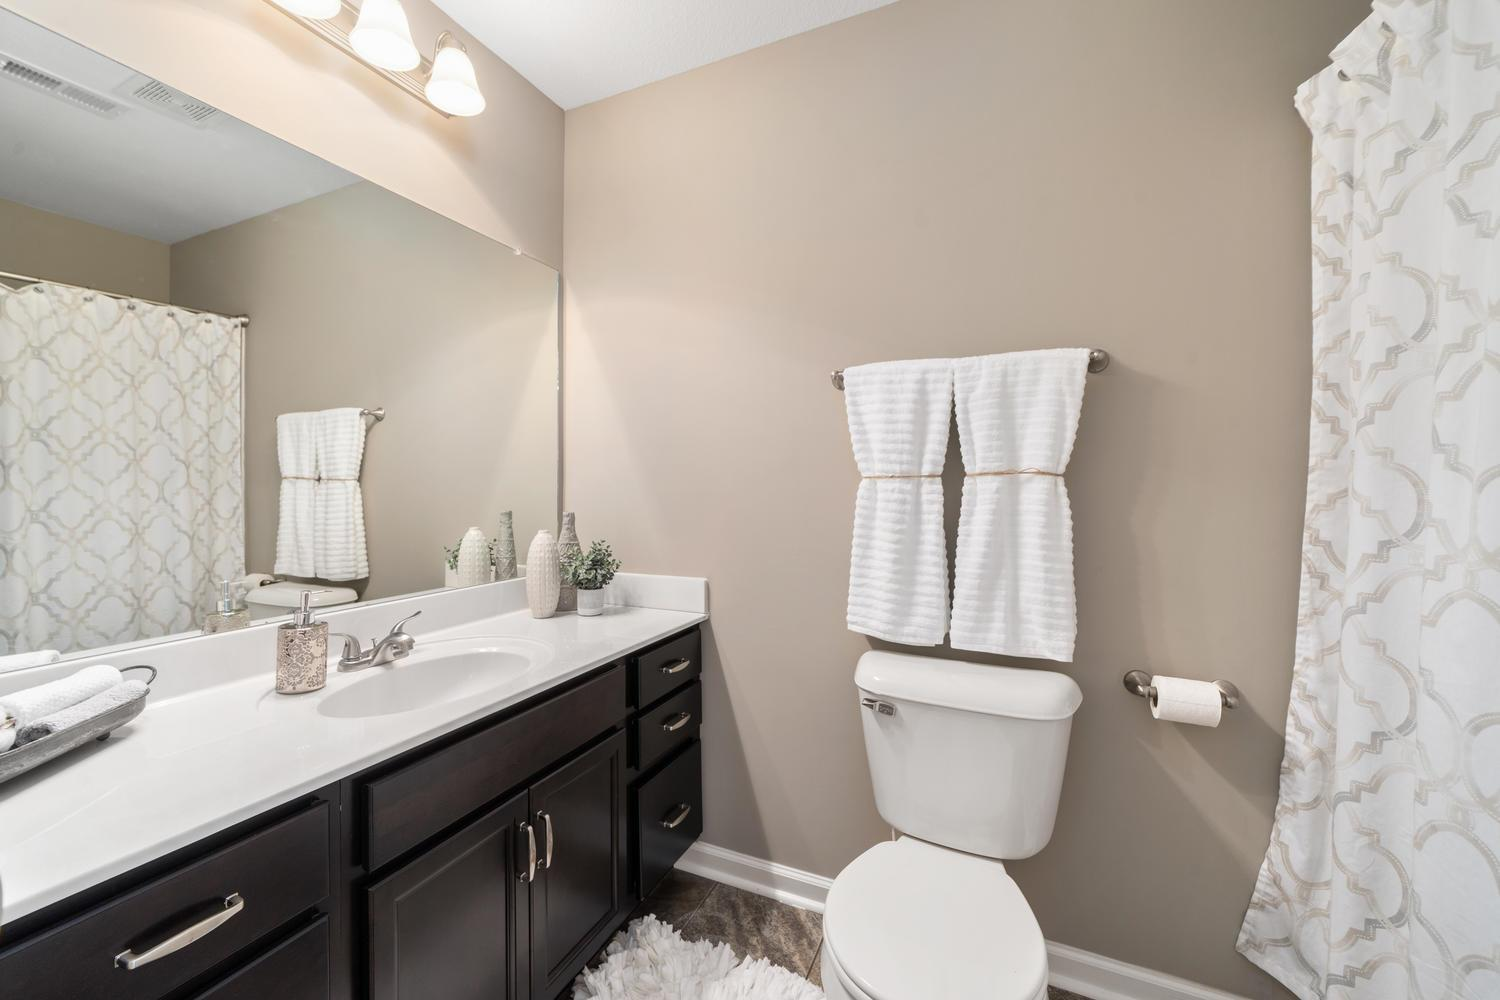 Check Out This Amazing New Construction townhome located close to Tennova Healthcare & Zoned for Rossview - Stainless Steel Appliances - Granite Counters in the Kitchen is Standard Selection - LVT Floors Installed on Main Level - Community Clubhouse & Pool - Pick Between 8 Different Selection Packages BEFORE August 2nd